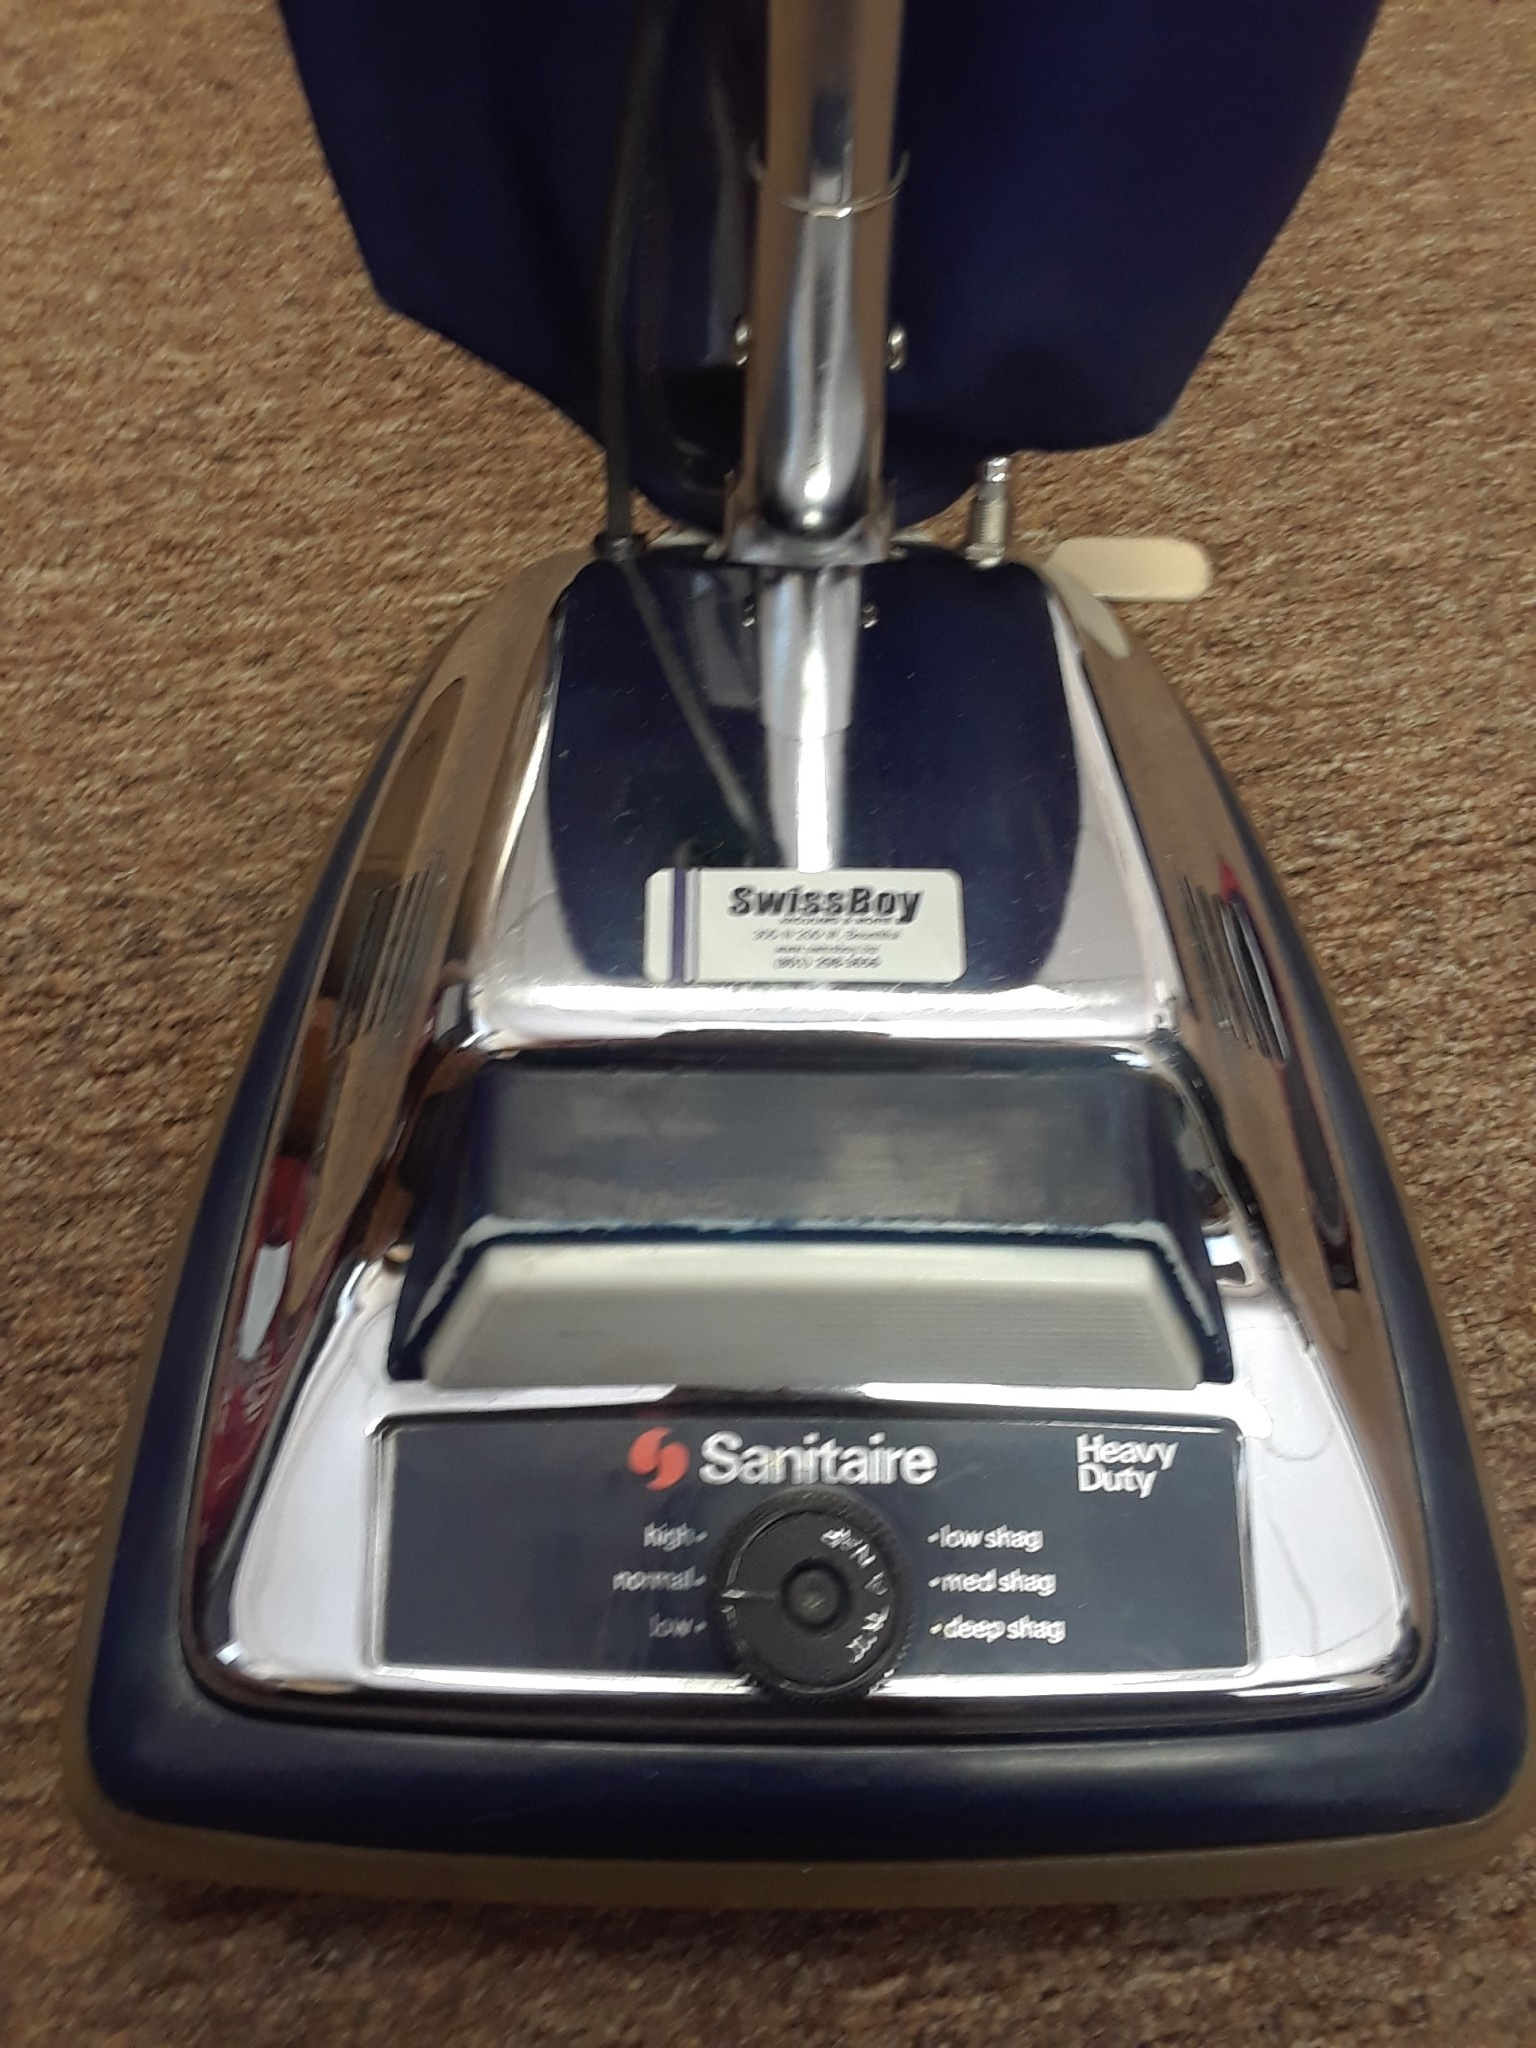 Sanitaire Refurbished Upright - Sanitaire 00651290